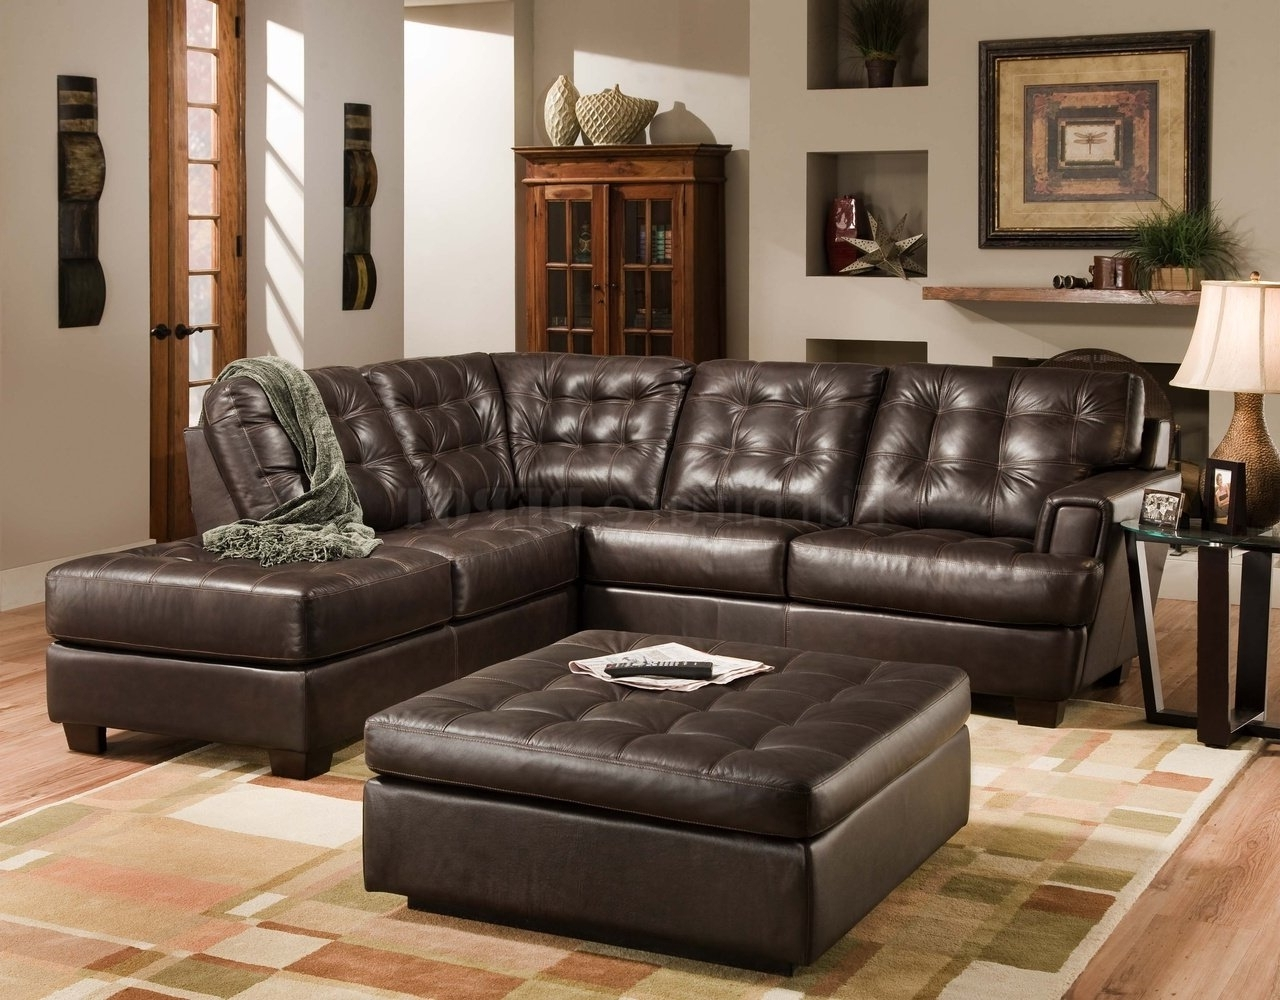 Brown Leather Sectionals With Chaise Pertaining To Favorite Double Chaise Loveseat Leather Loveseat With Chaise Large (View 2 of 15)